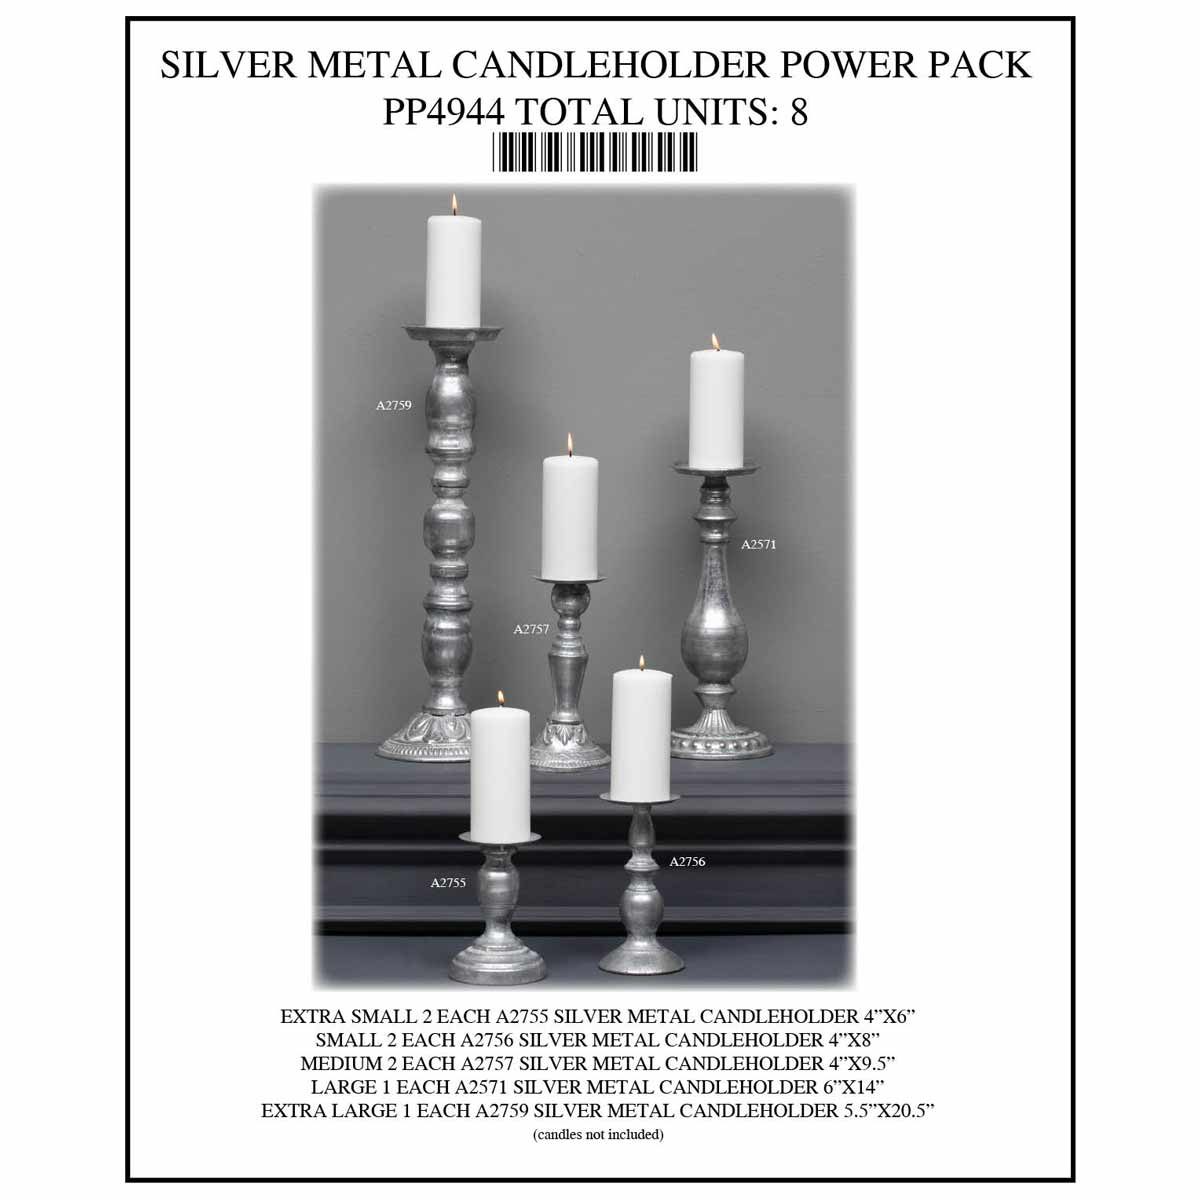 ANTIQUE METAL CANDLE HOLDER POWER PACK 8 UNITS PP4944